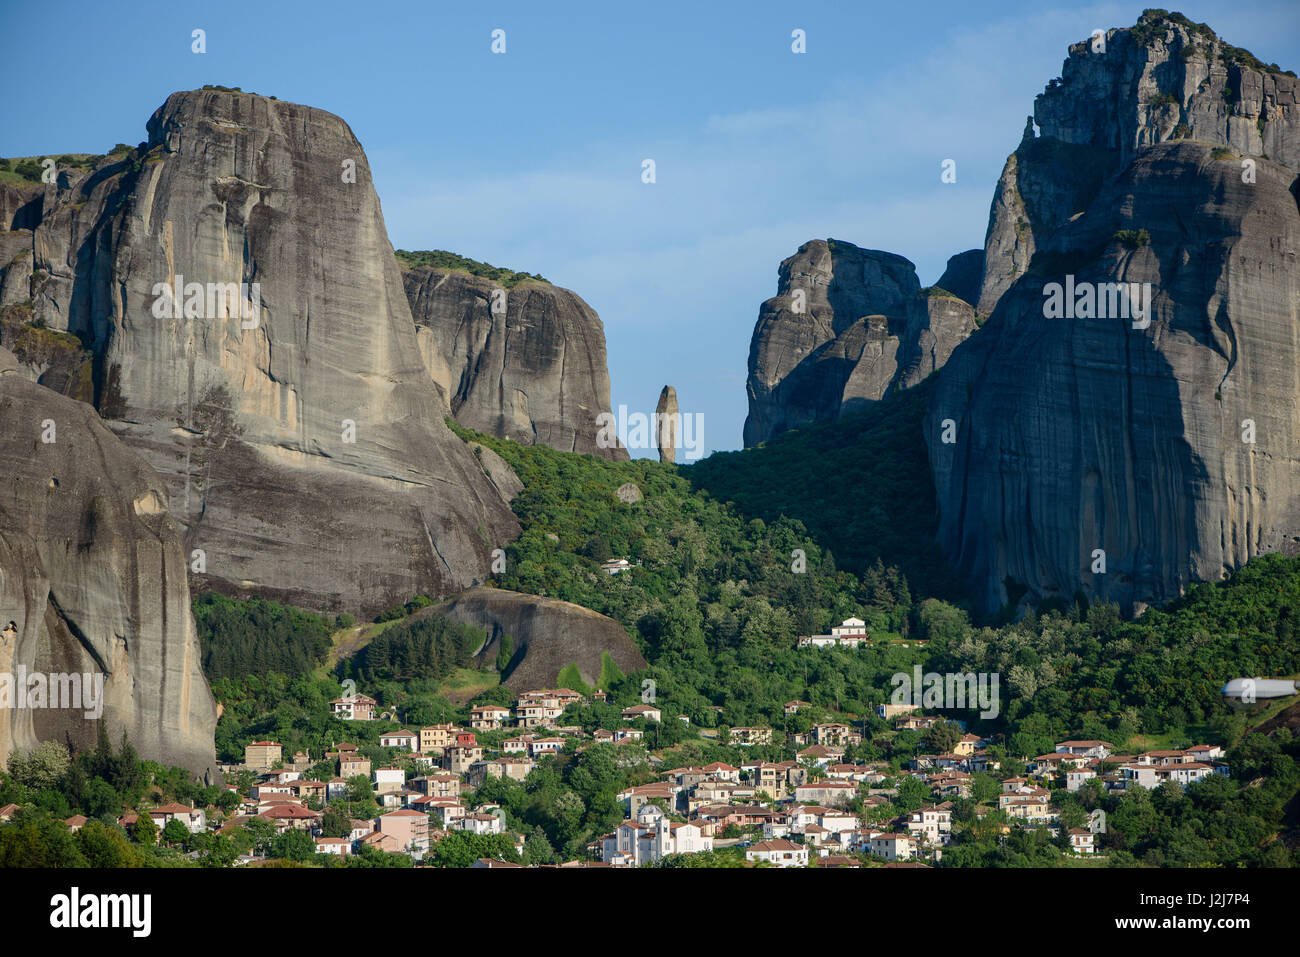 view to the mountains like immense monolithic pillars in Meteora, Greece - Stock Image